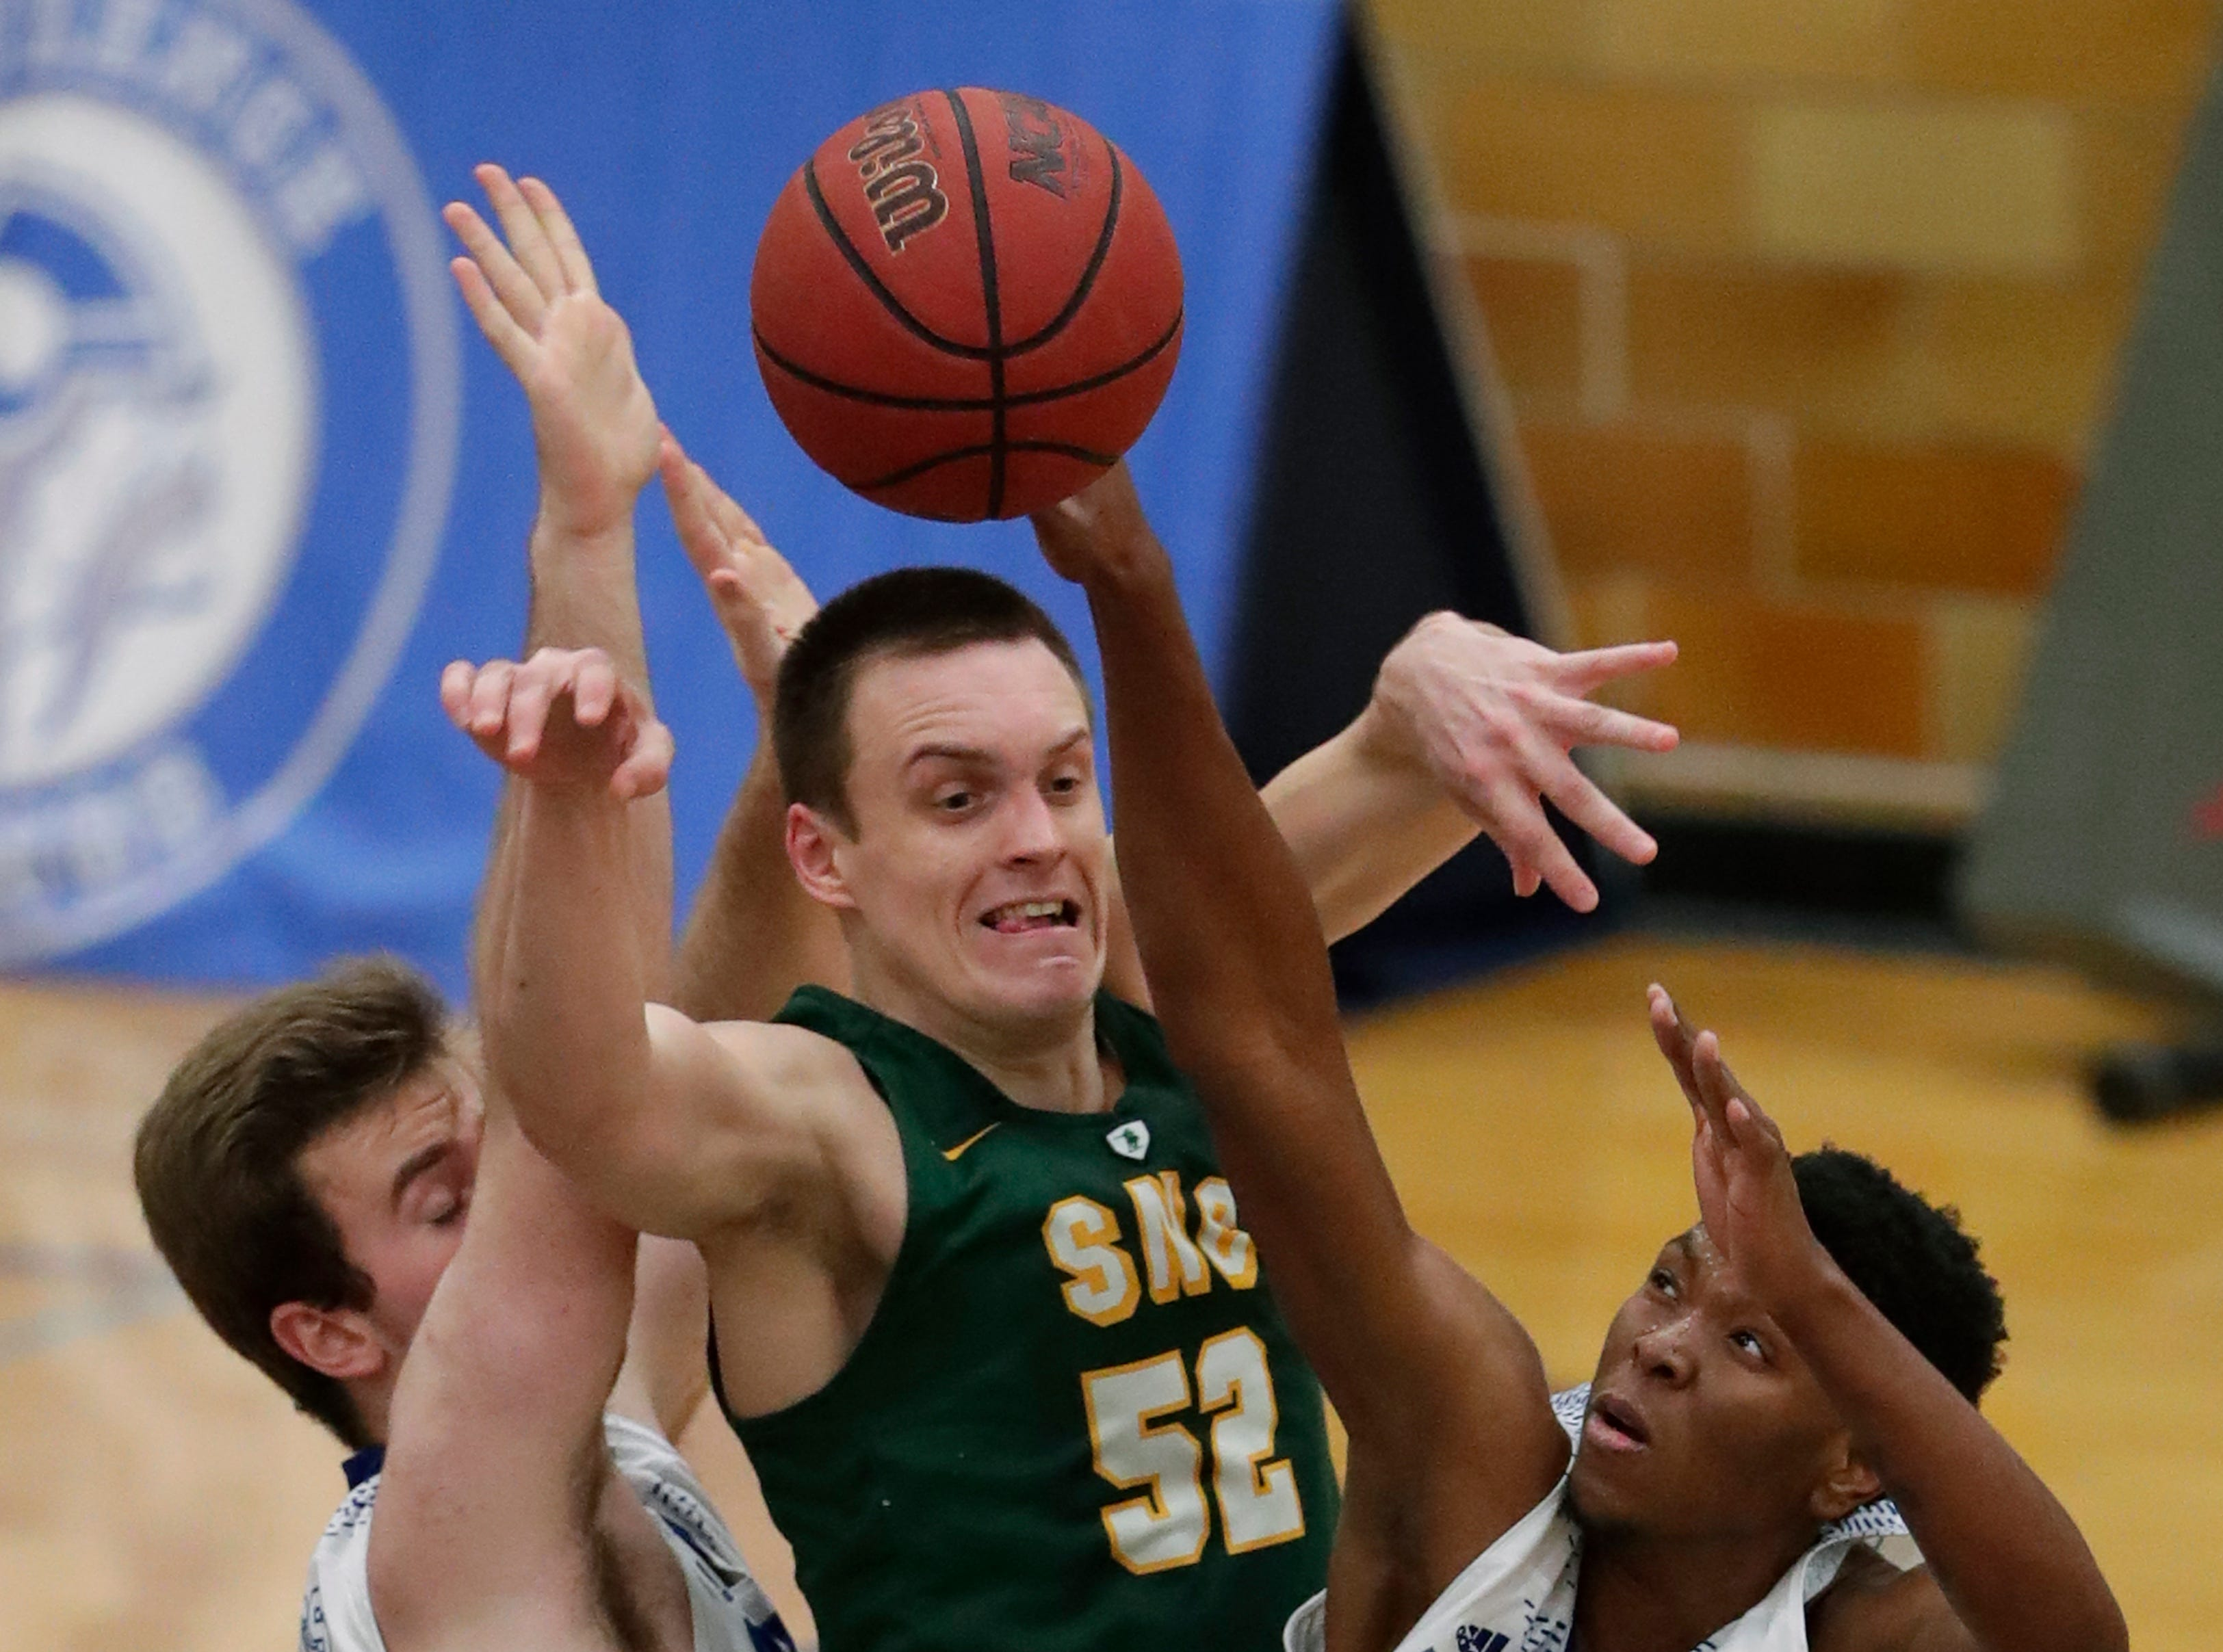 Lawrence University's Joe Duero, left, and Bryce Denham, right, defend against St. Norbert College's Joe Lemon during their men's basketball game Thursday, January 31, 2019, at Alexander Gymnasium in Appleton, Wis. 